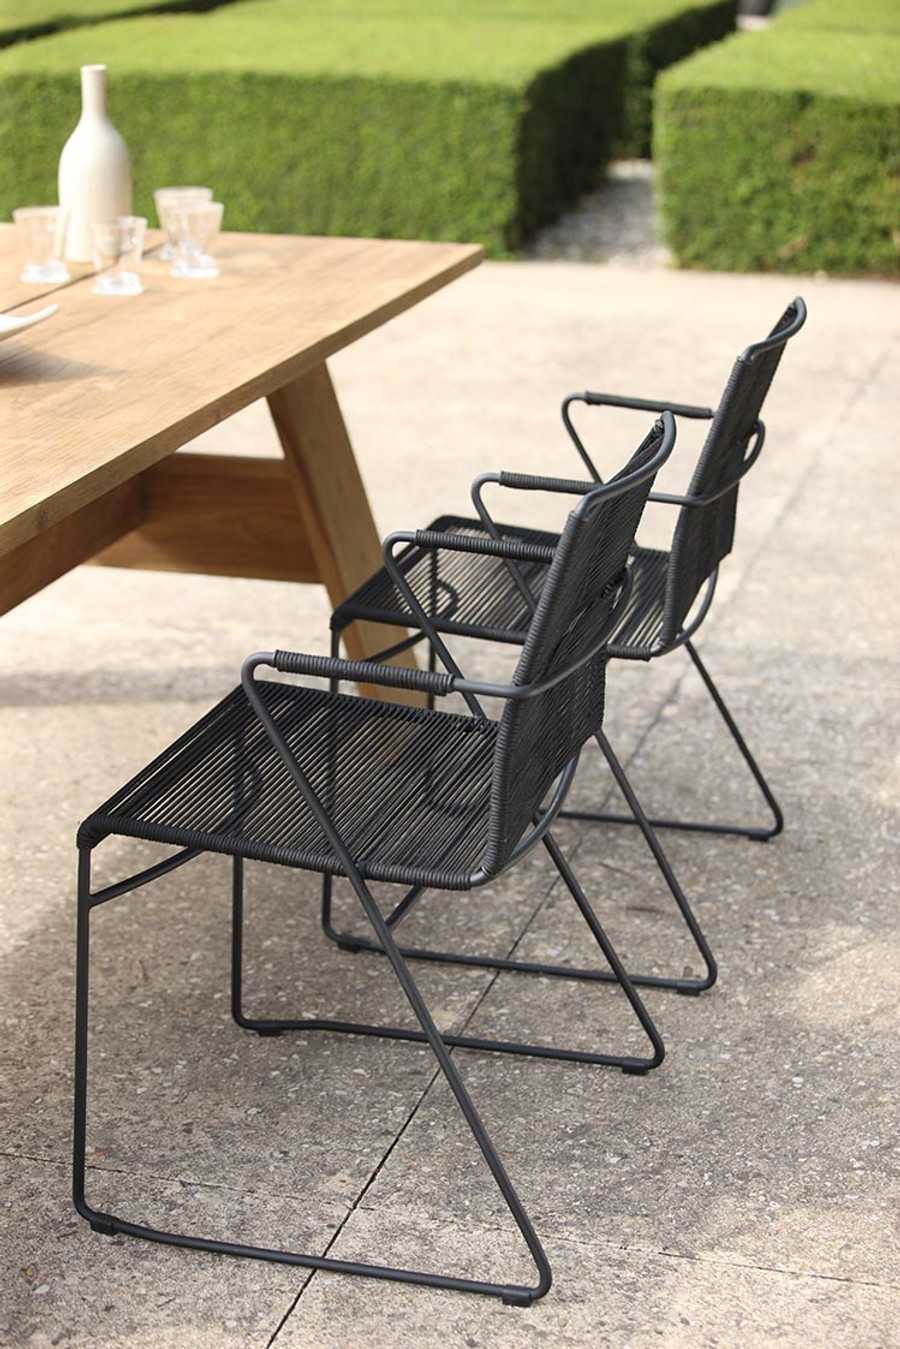 James outdoor dining arm chair in Lava Rope used with the Vista dining table